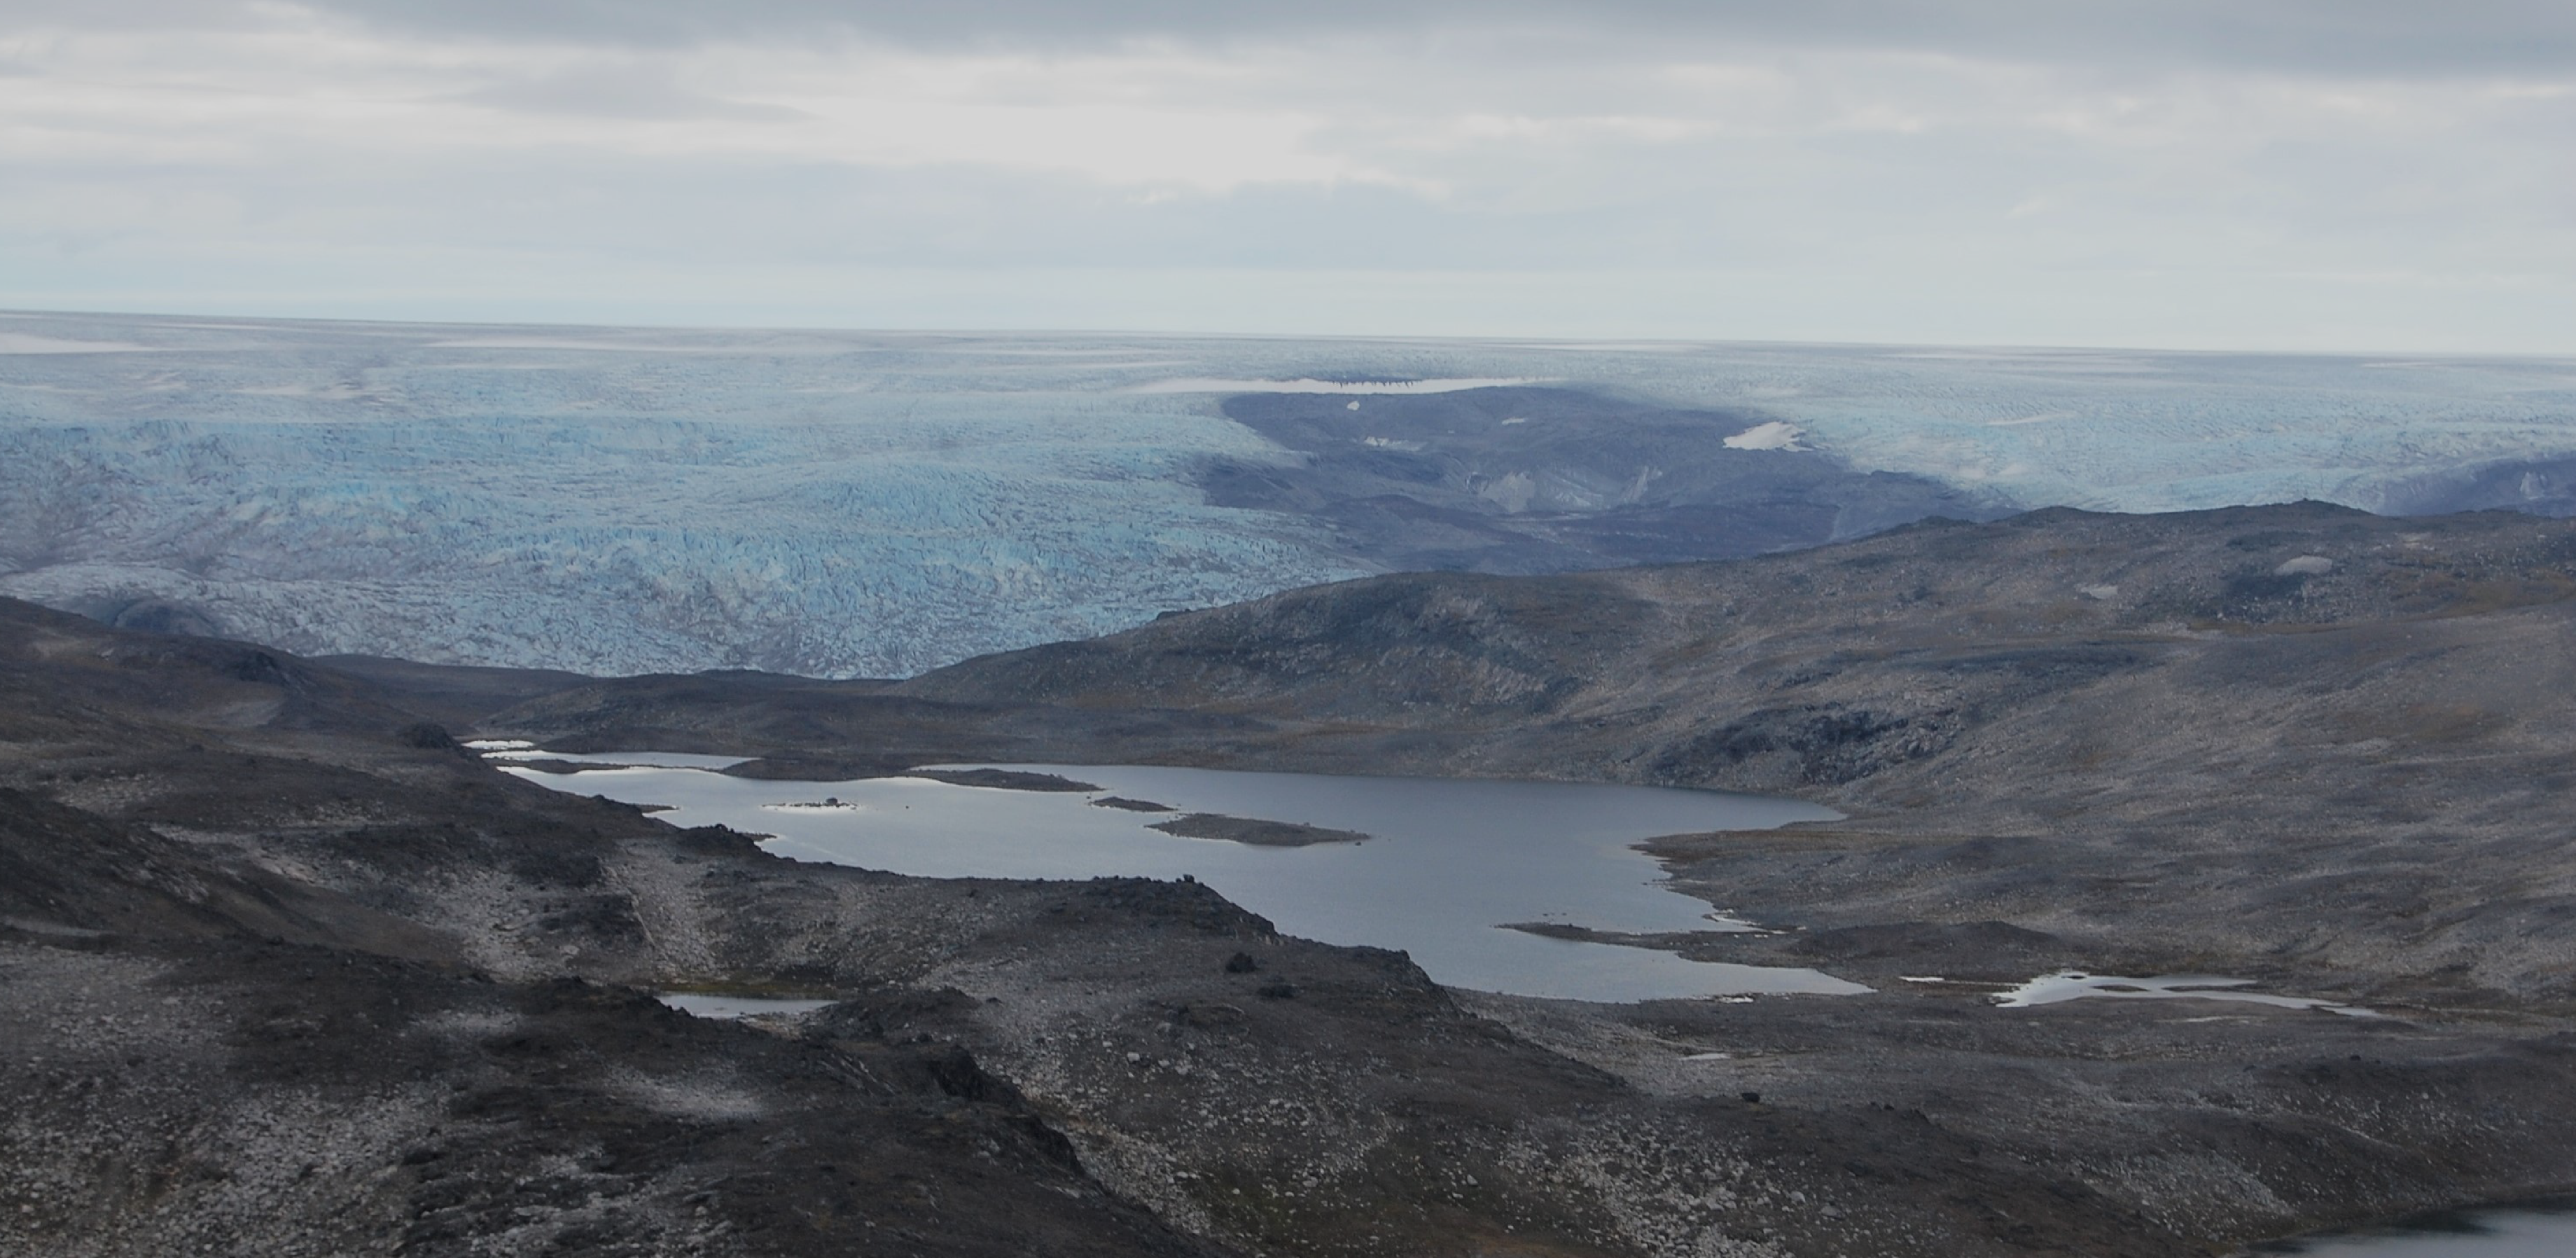 Image of Greenland landscape, with barren dark rocks in the foreground, against a backdrop of ice